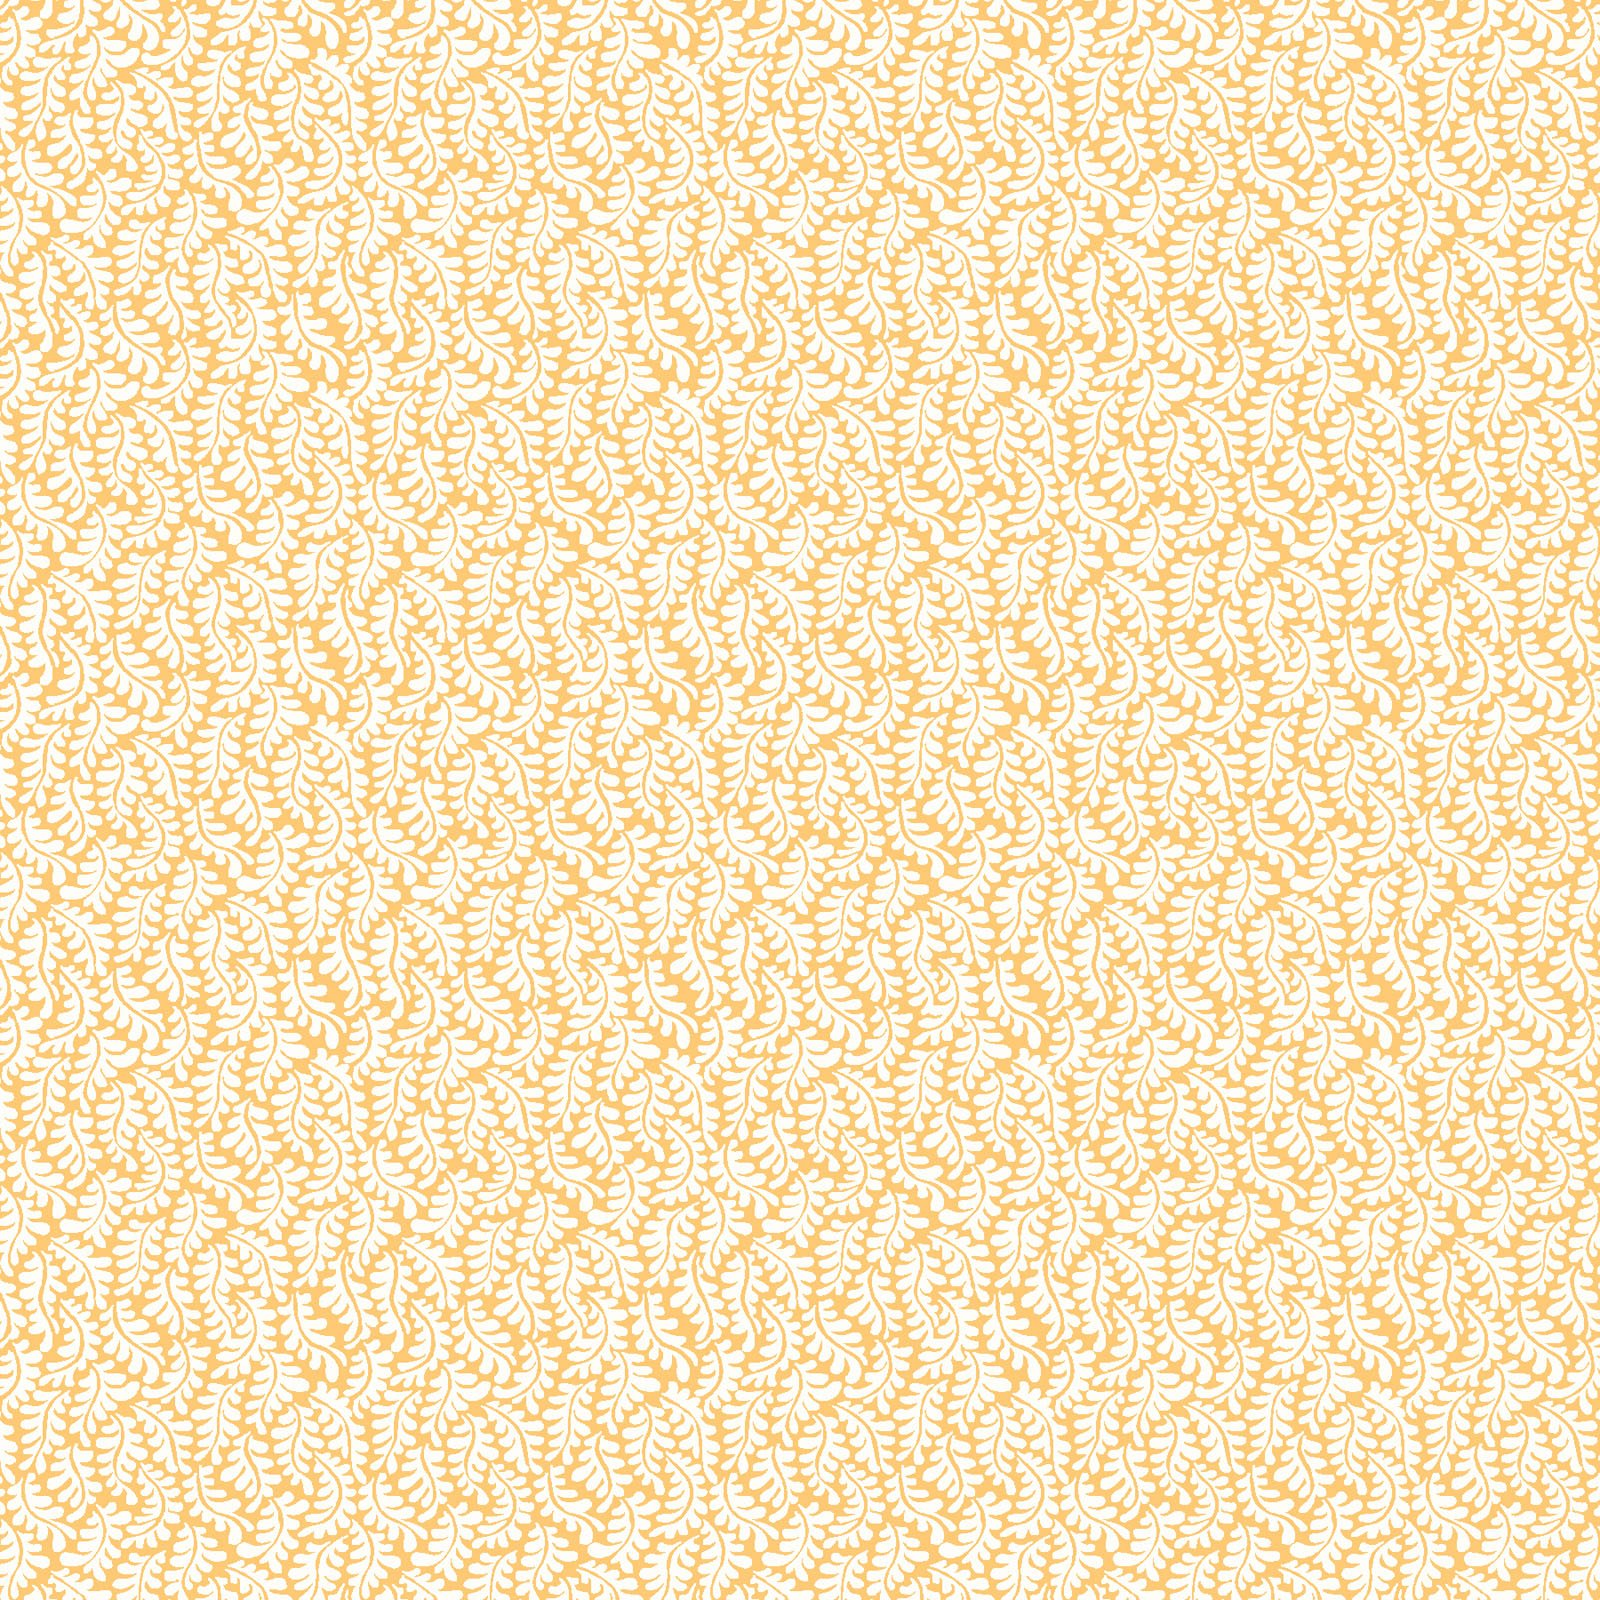 EESC-9878 S - BELLE EPOQUE BY MAYWOOD STUDIO MICRO LEAVES YELLOW - ARRIVING JANUARY 2021